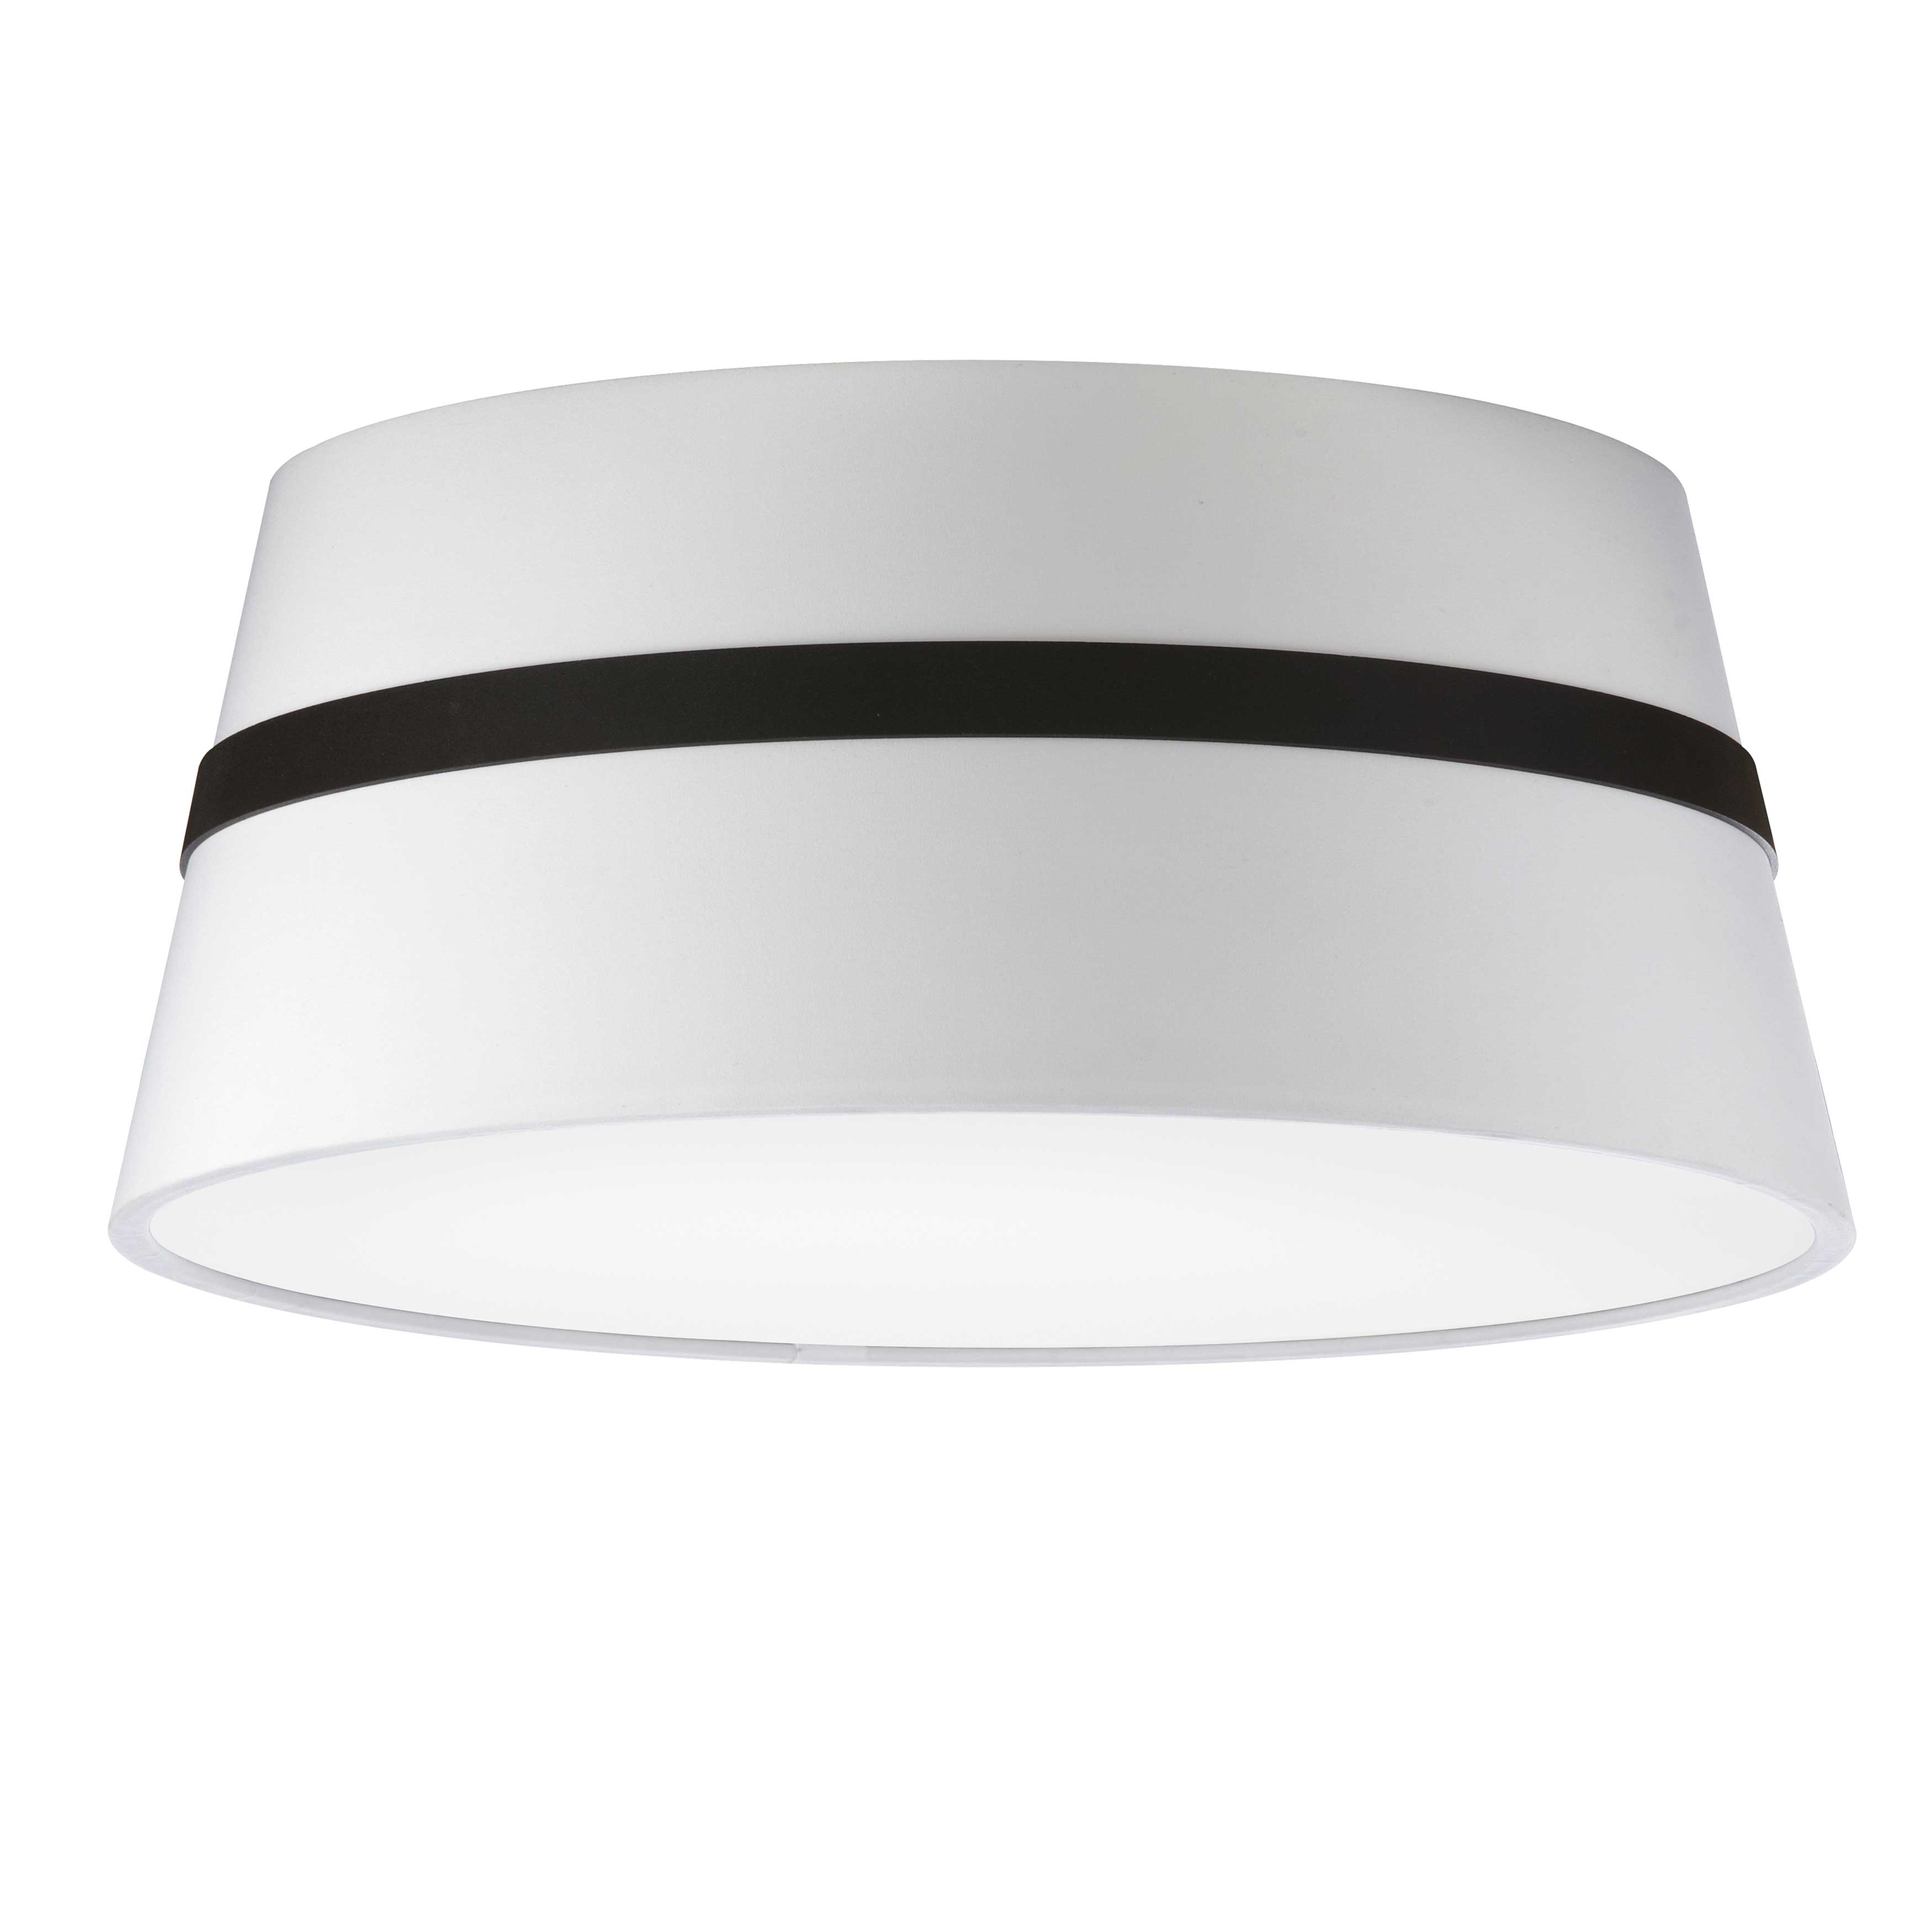 3 Light Incandescent Matte Black Semi-Flush Mount w/ White Shade